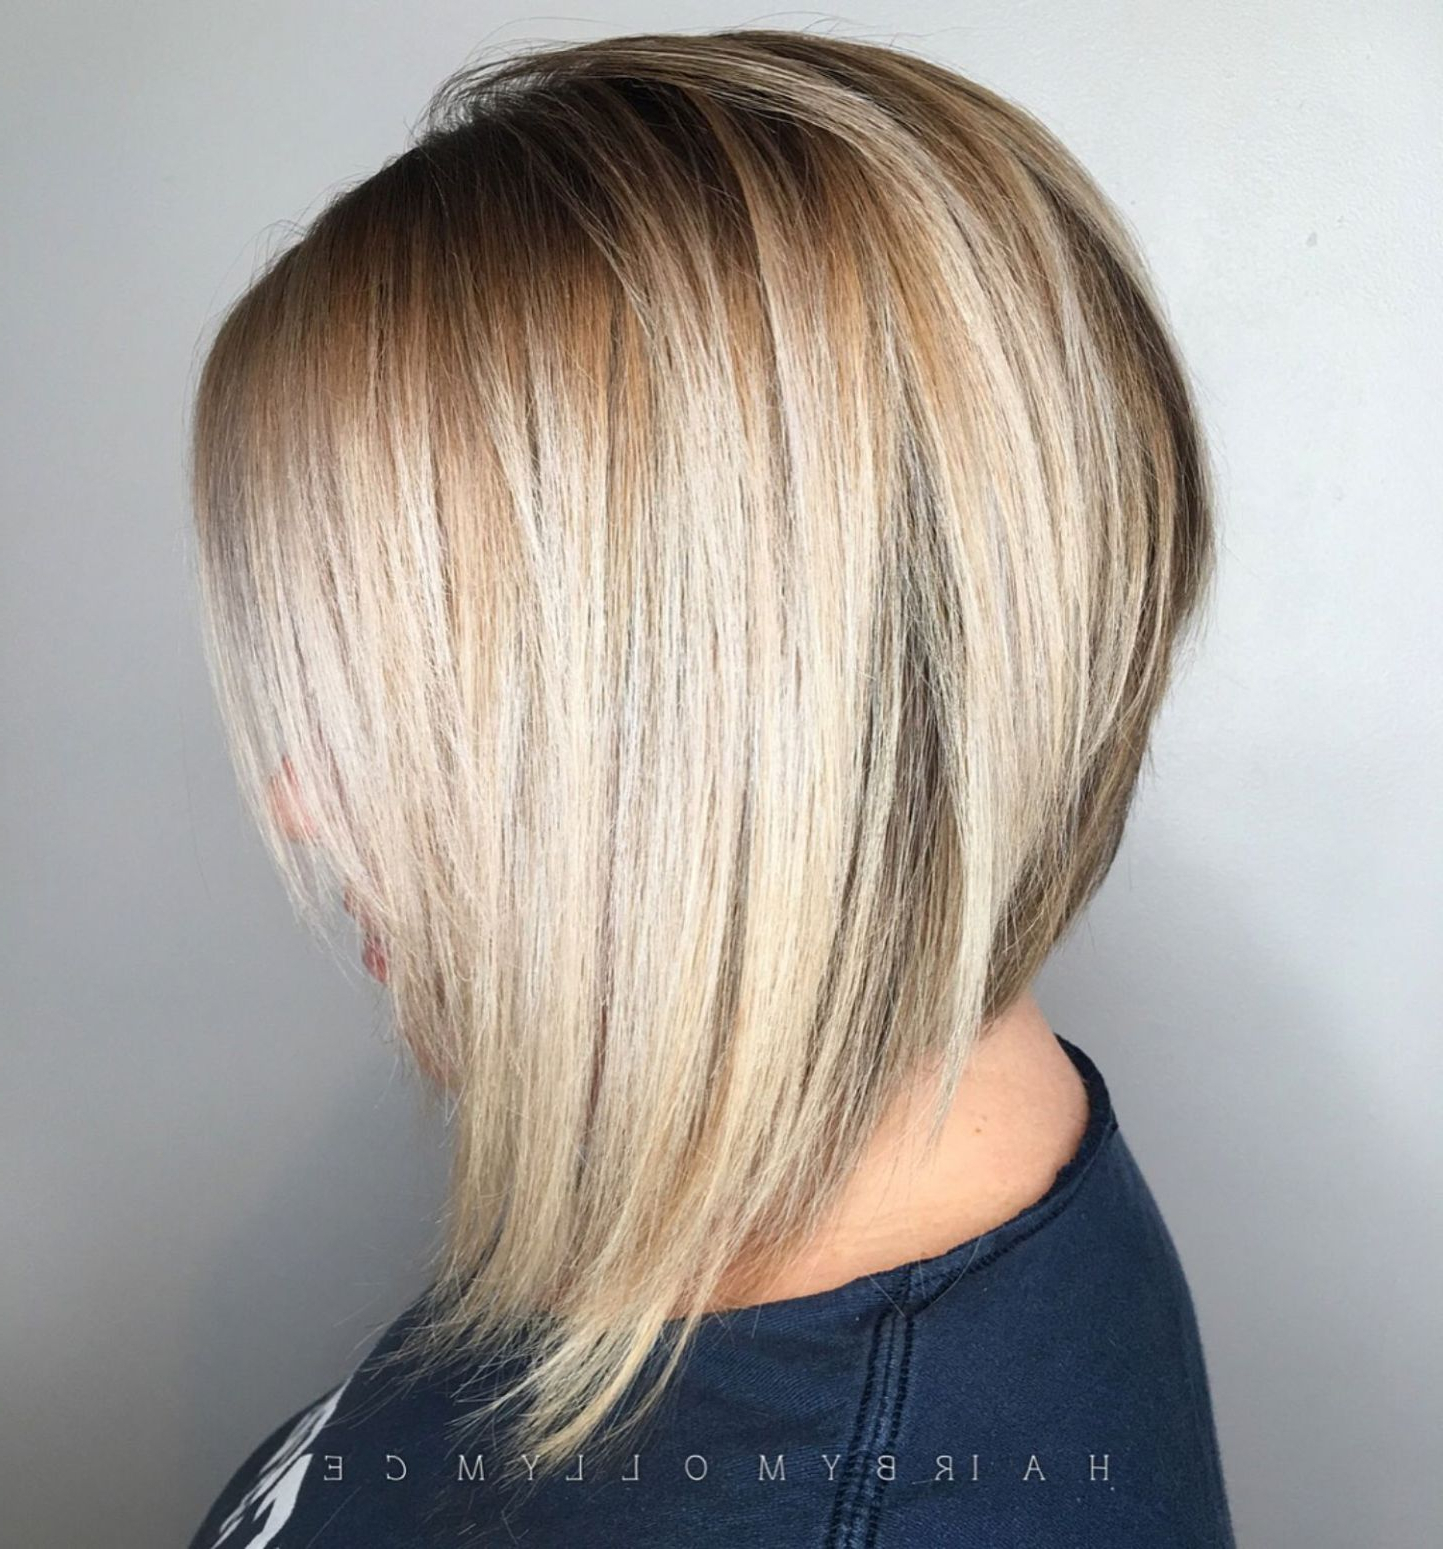 60 Beautiful And Convenient Medium Bob Hairstyles | Medium Within Angled Bob Hairstyles With Razored Ends (View 2 of 20)